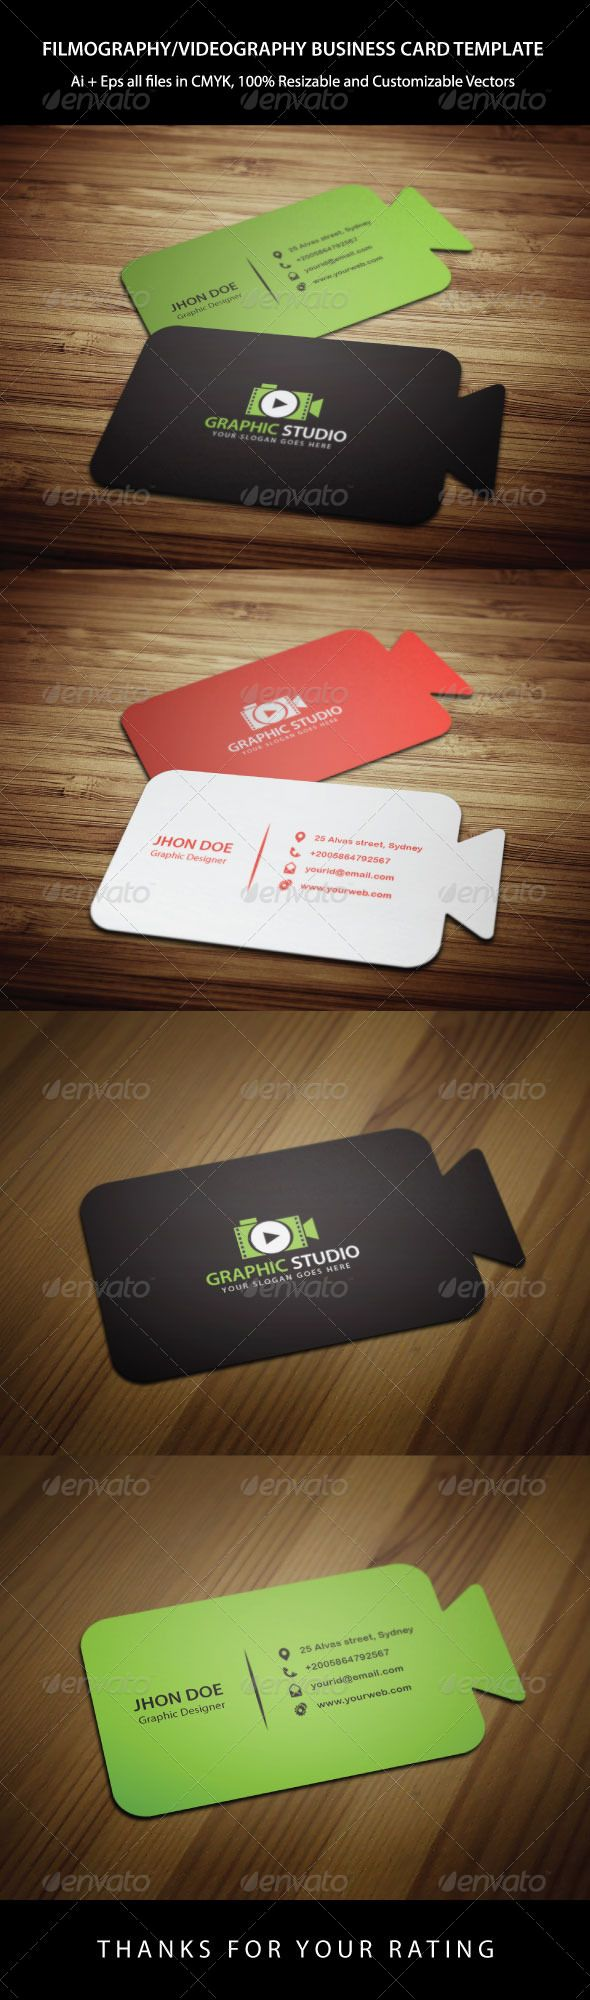 Cinematography business card template pinterest card templates cinematography business card template design download httpgraphicriveritemcinematography business card template 5948940refksioks cheaphphosting Image collections